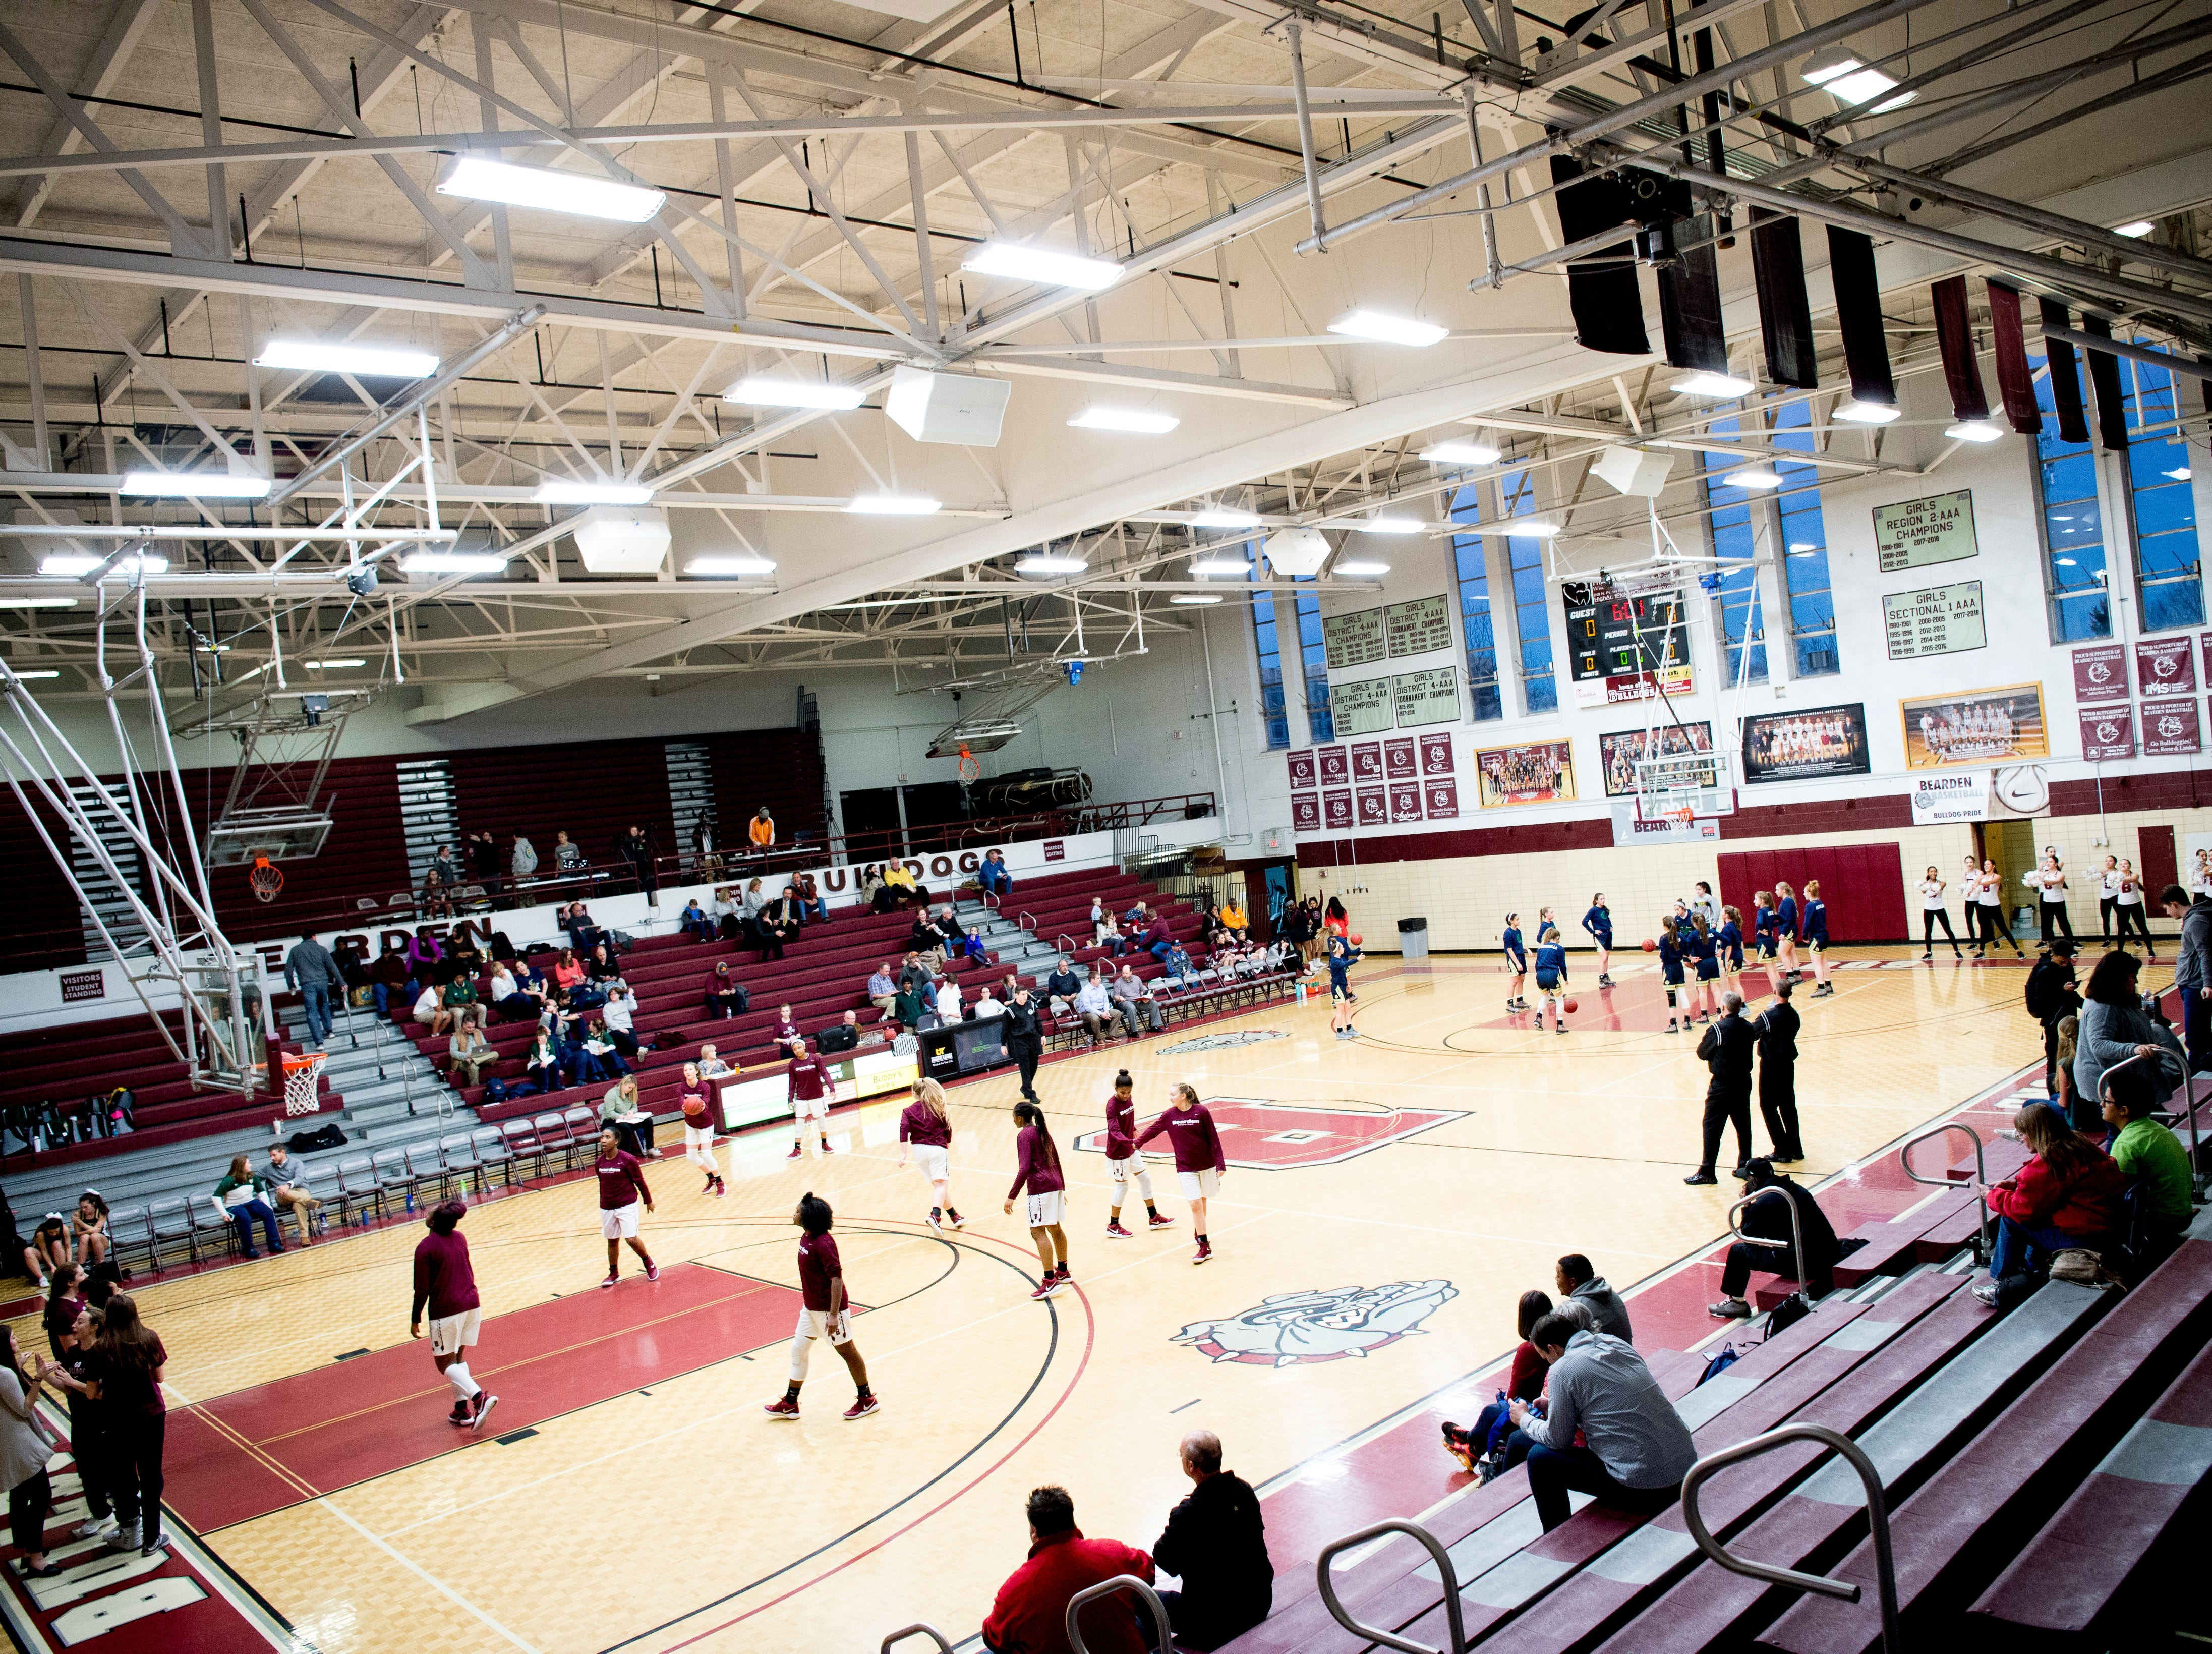 A view of the court before a game between Bearden and Catholic at Bearden High School in Knoxville, Tennessee on Thursday, January 10, 2019.